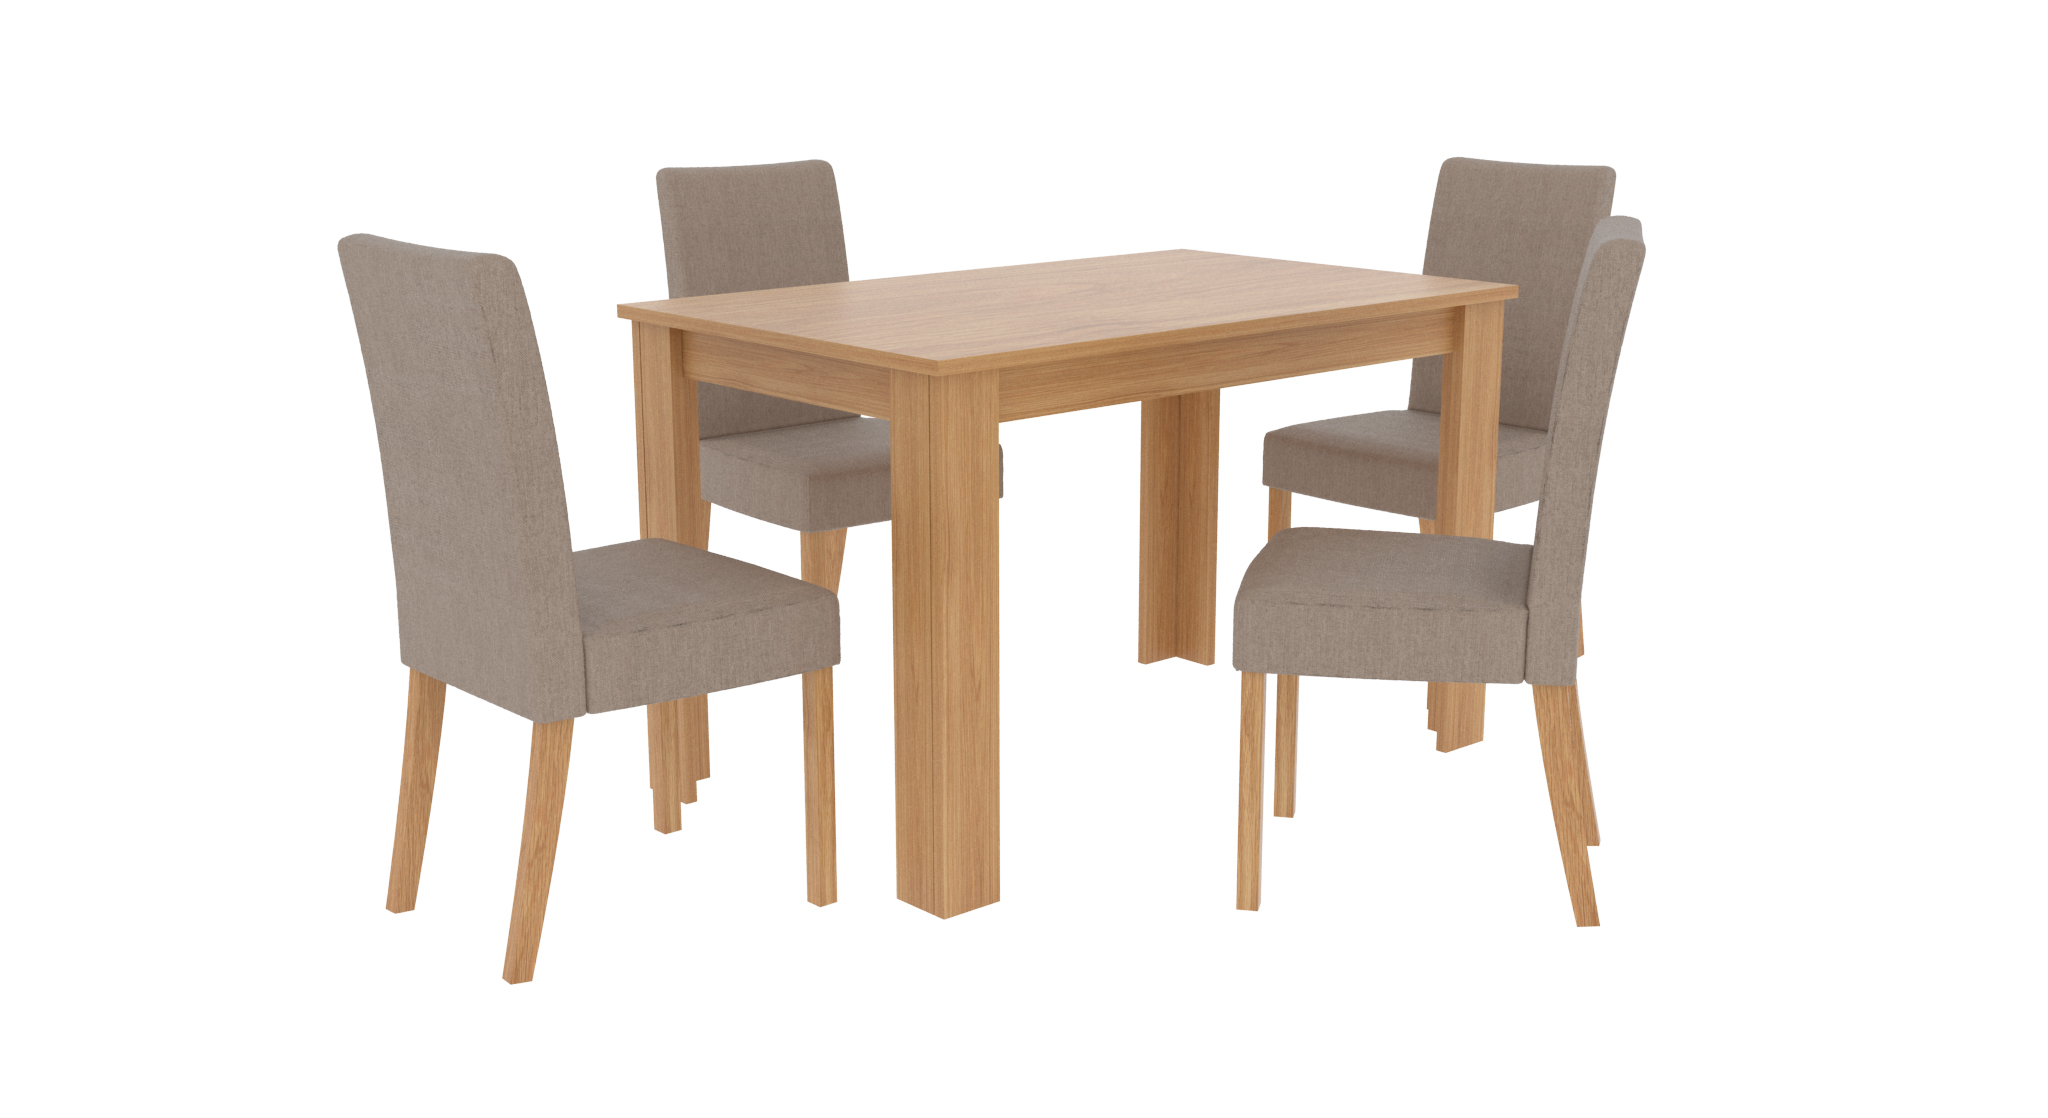 7121c999ca57 LPD Atlanta Oak Effect 4 Seater Dining Table - Excellent Value Budget Table